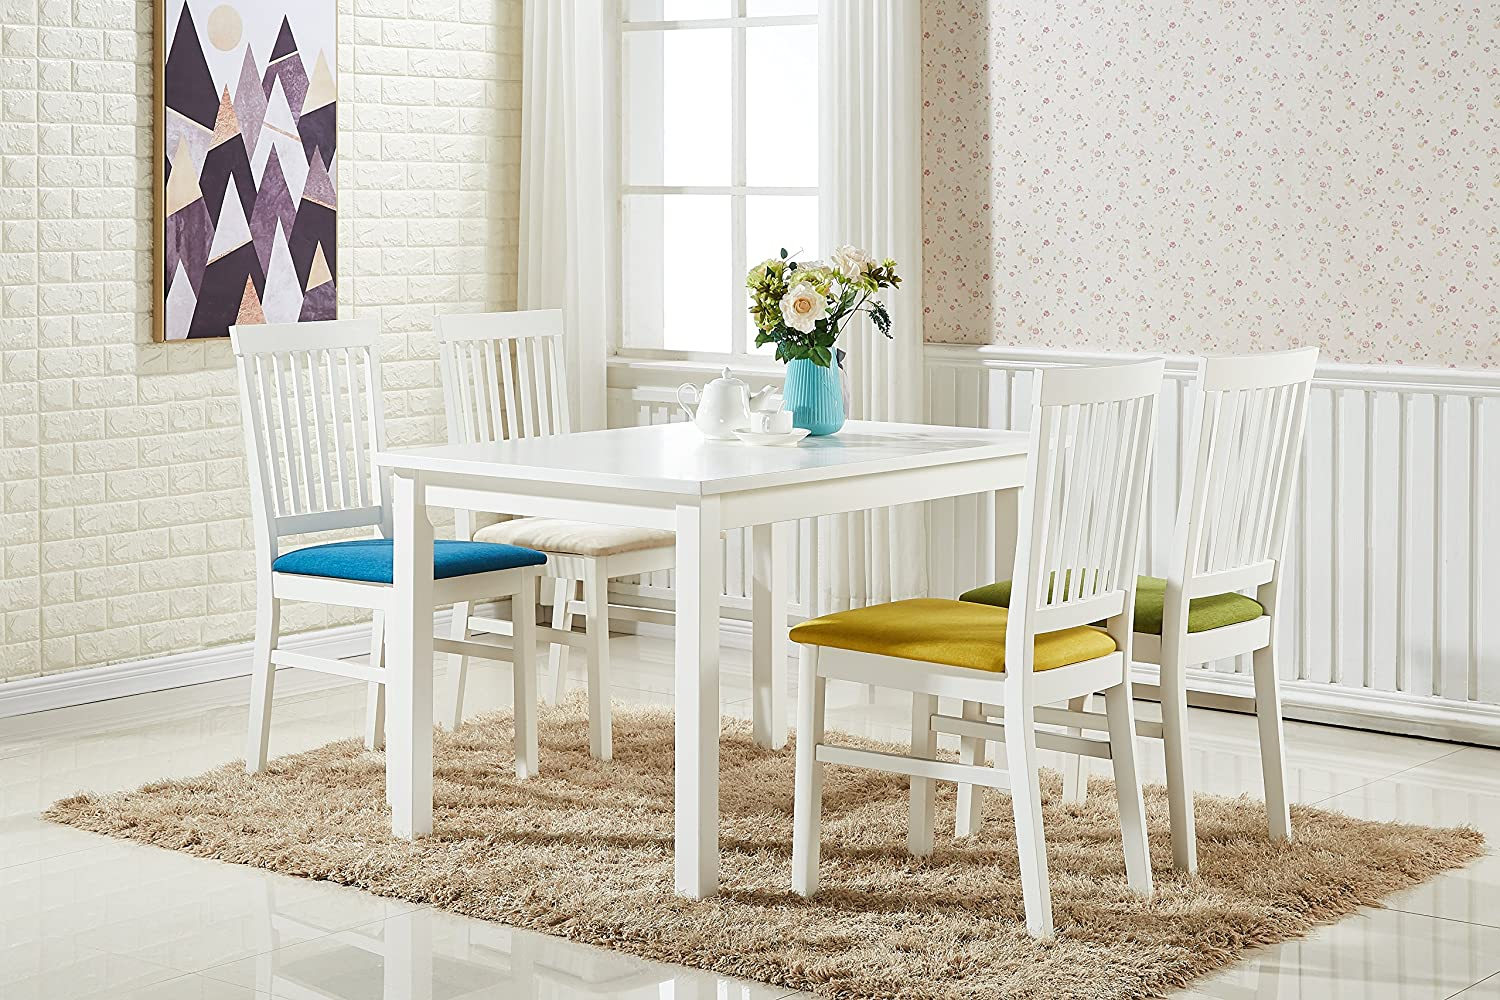 Incredible Pn Homewares Florence Dining Table And 4 Chairs Set Multi Colour Chair Seats And White Wooden Table And Chair Set Home Interior And Landscaping Ferensignezvosmurscom